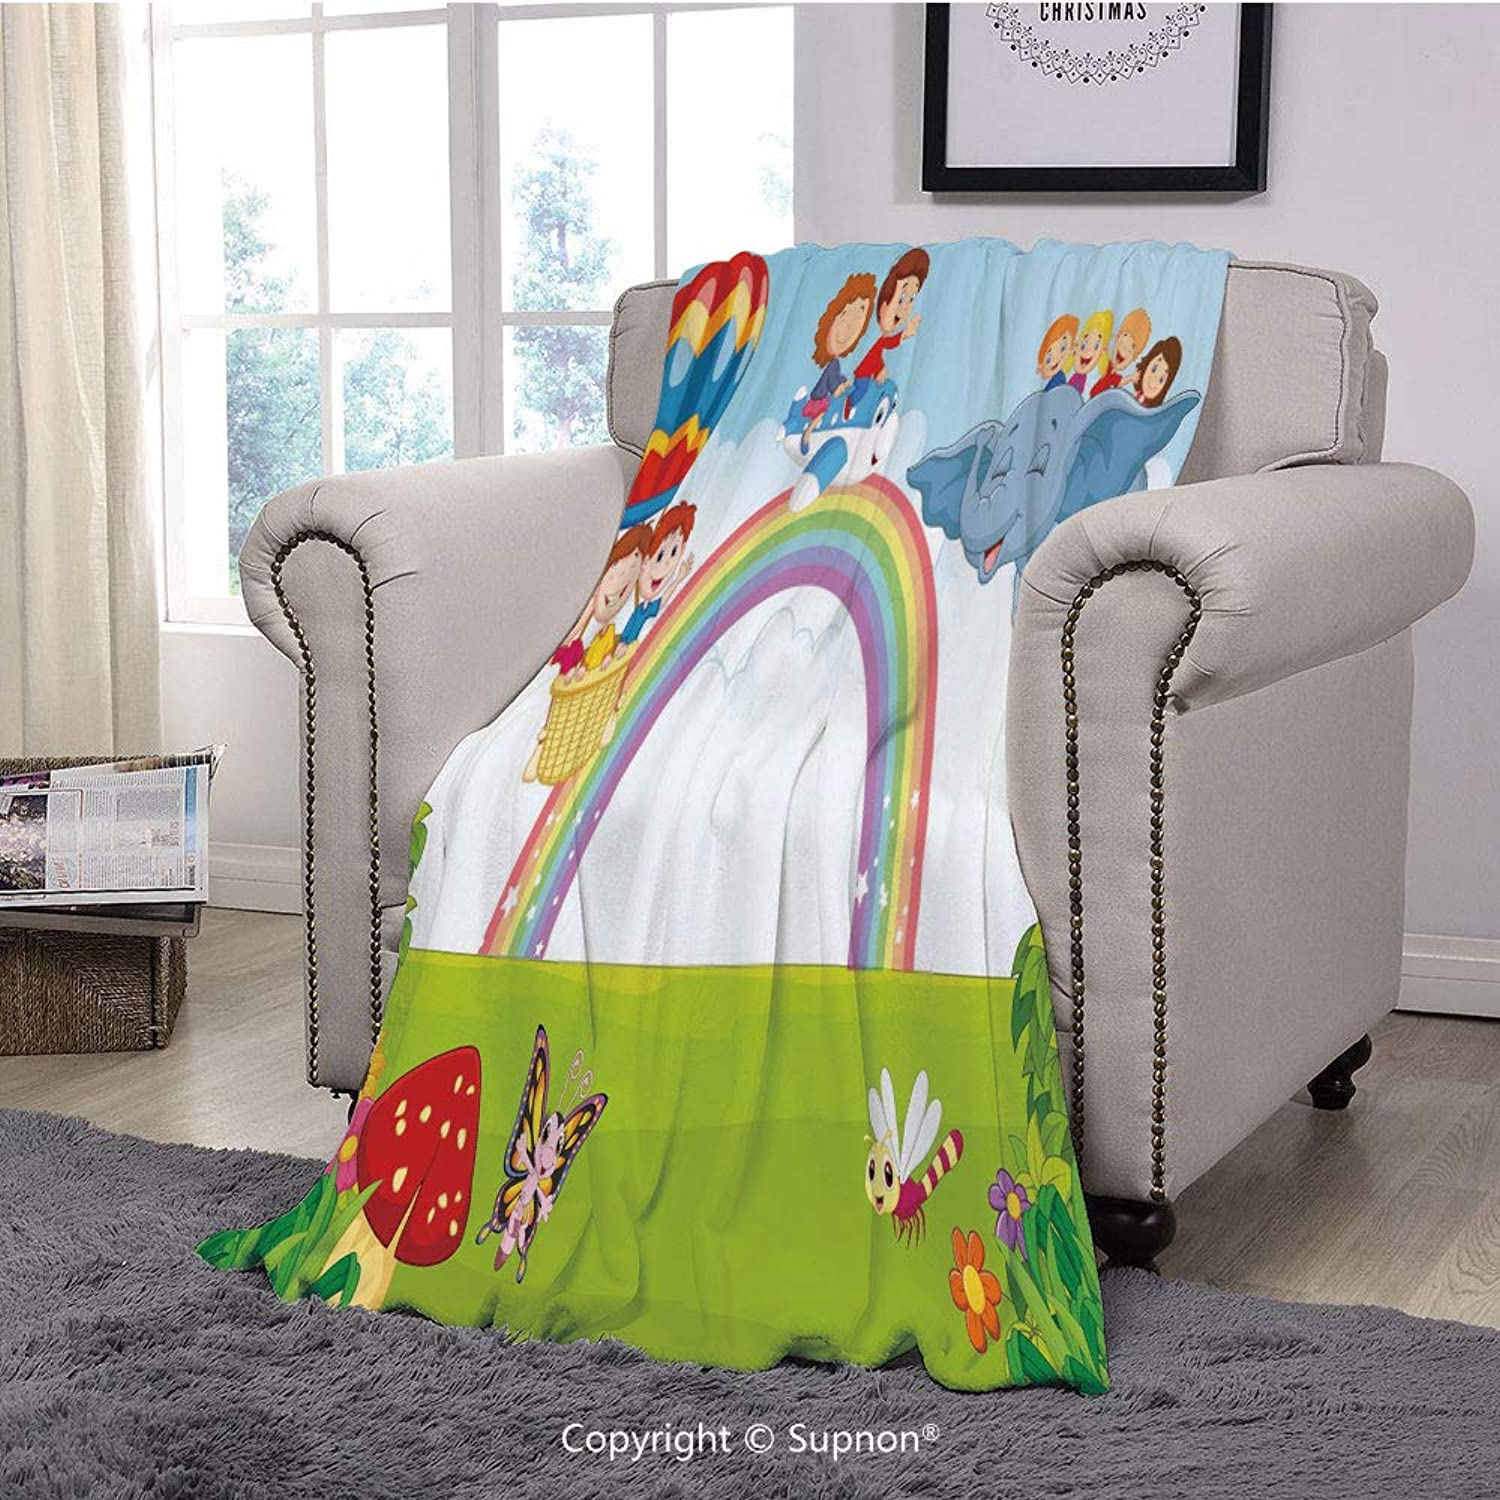 BeeMeng Printing Blanket Coral Plush Super Soft Decorative Throw Blanket,Rainbow,Cartoon Kids Flying on Baloon Plane and Elephant with Green Field and a Rainbow Decorative,Multicolor(59  x 59 )